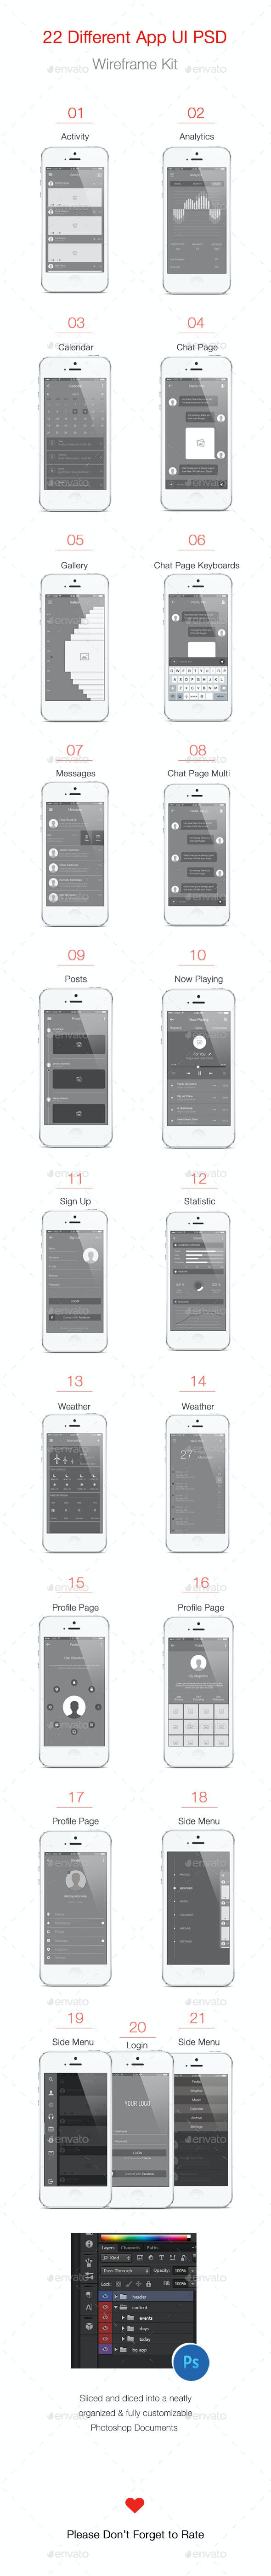 Mobile App Wireframe Ui Kit - User Interfaces Web Elements